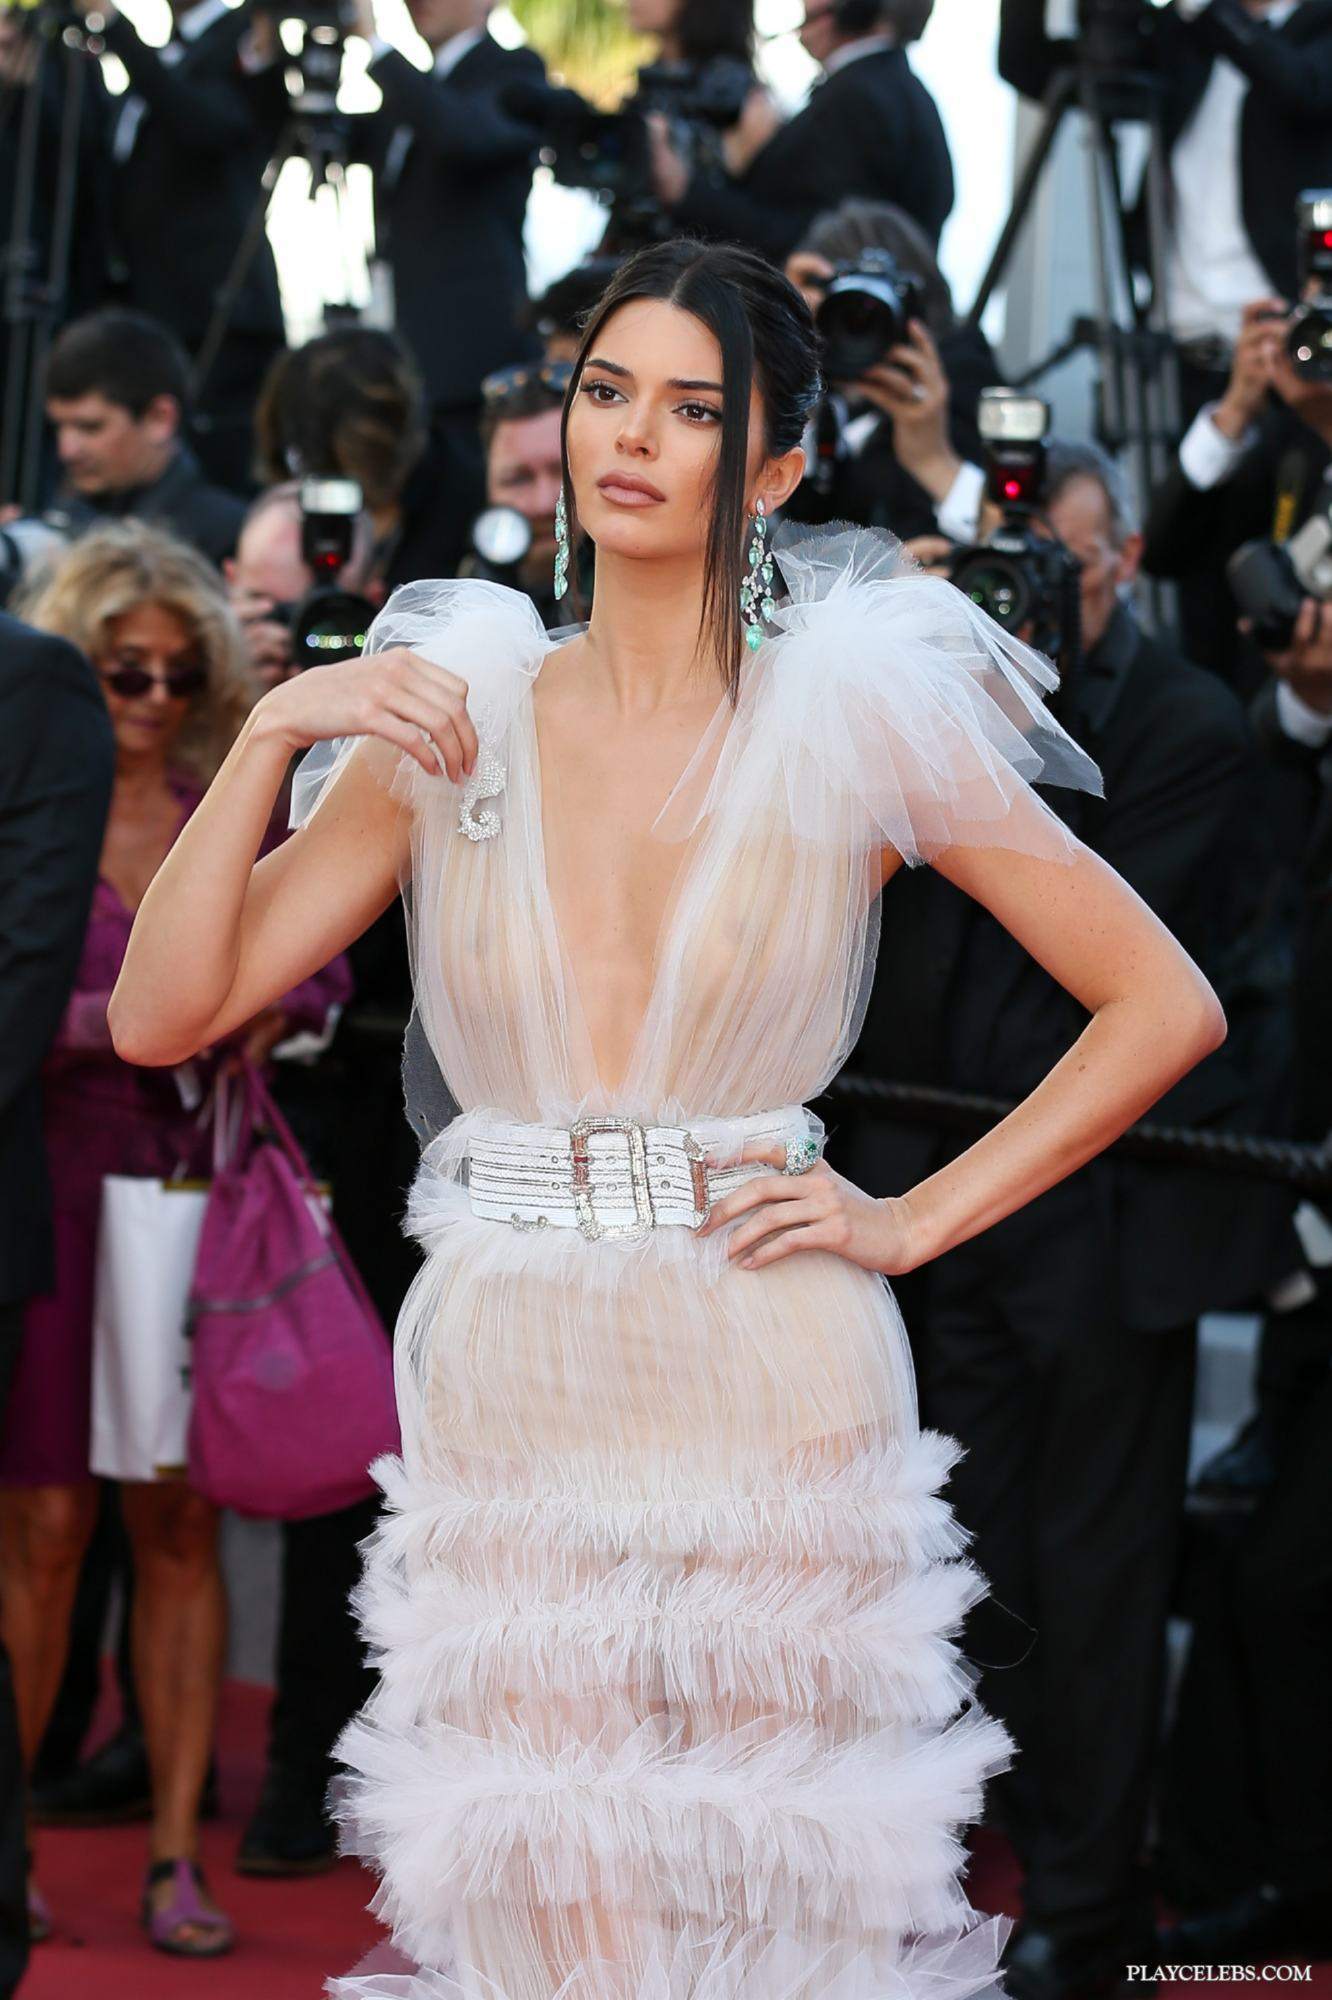 Kendall Jenner Posing In See Through During Cannes Film Festival